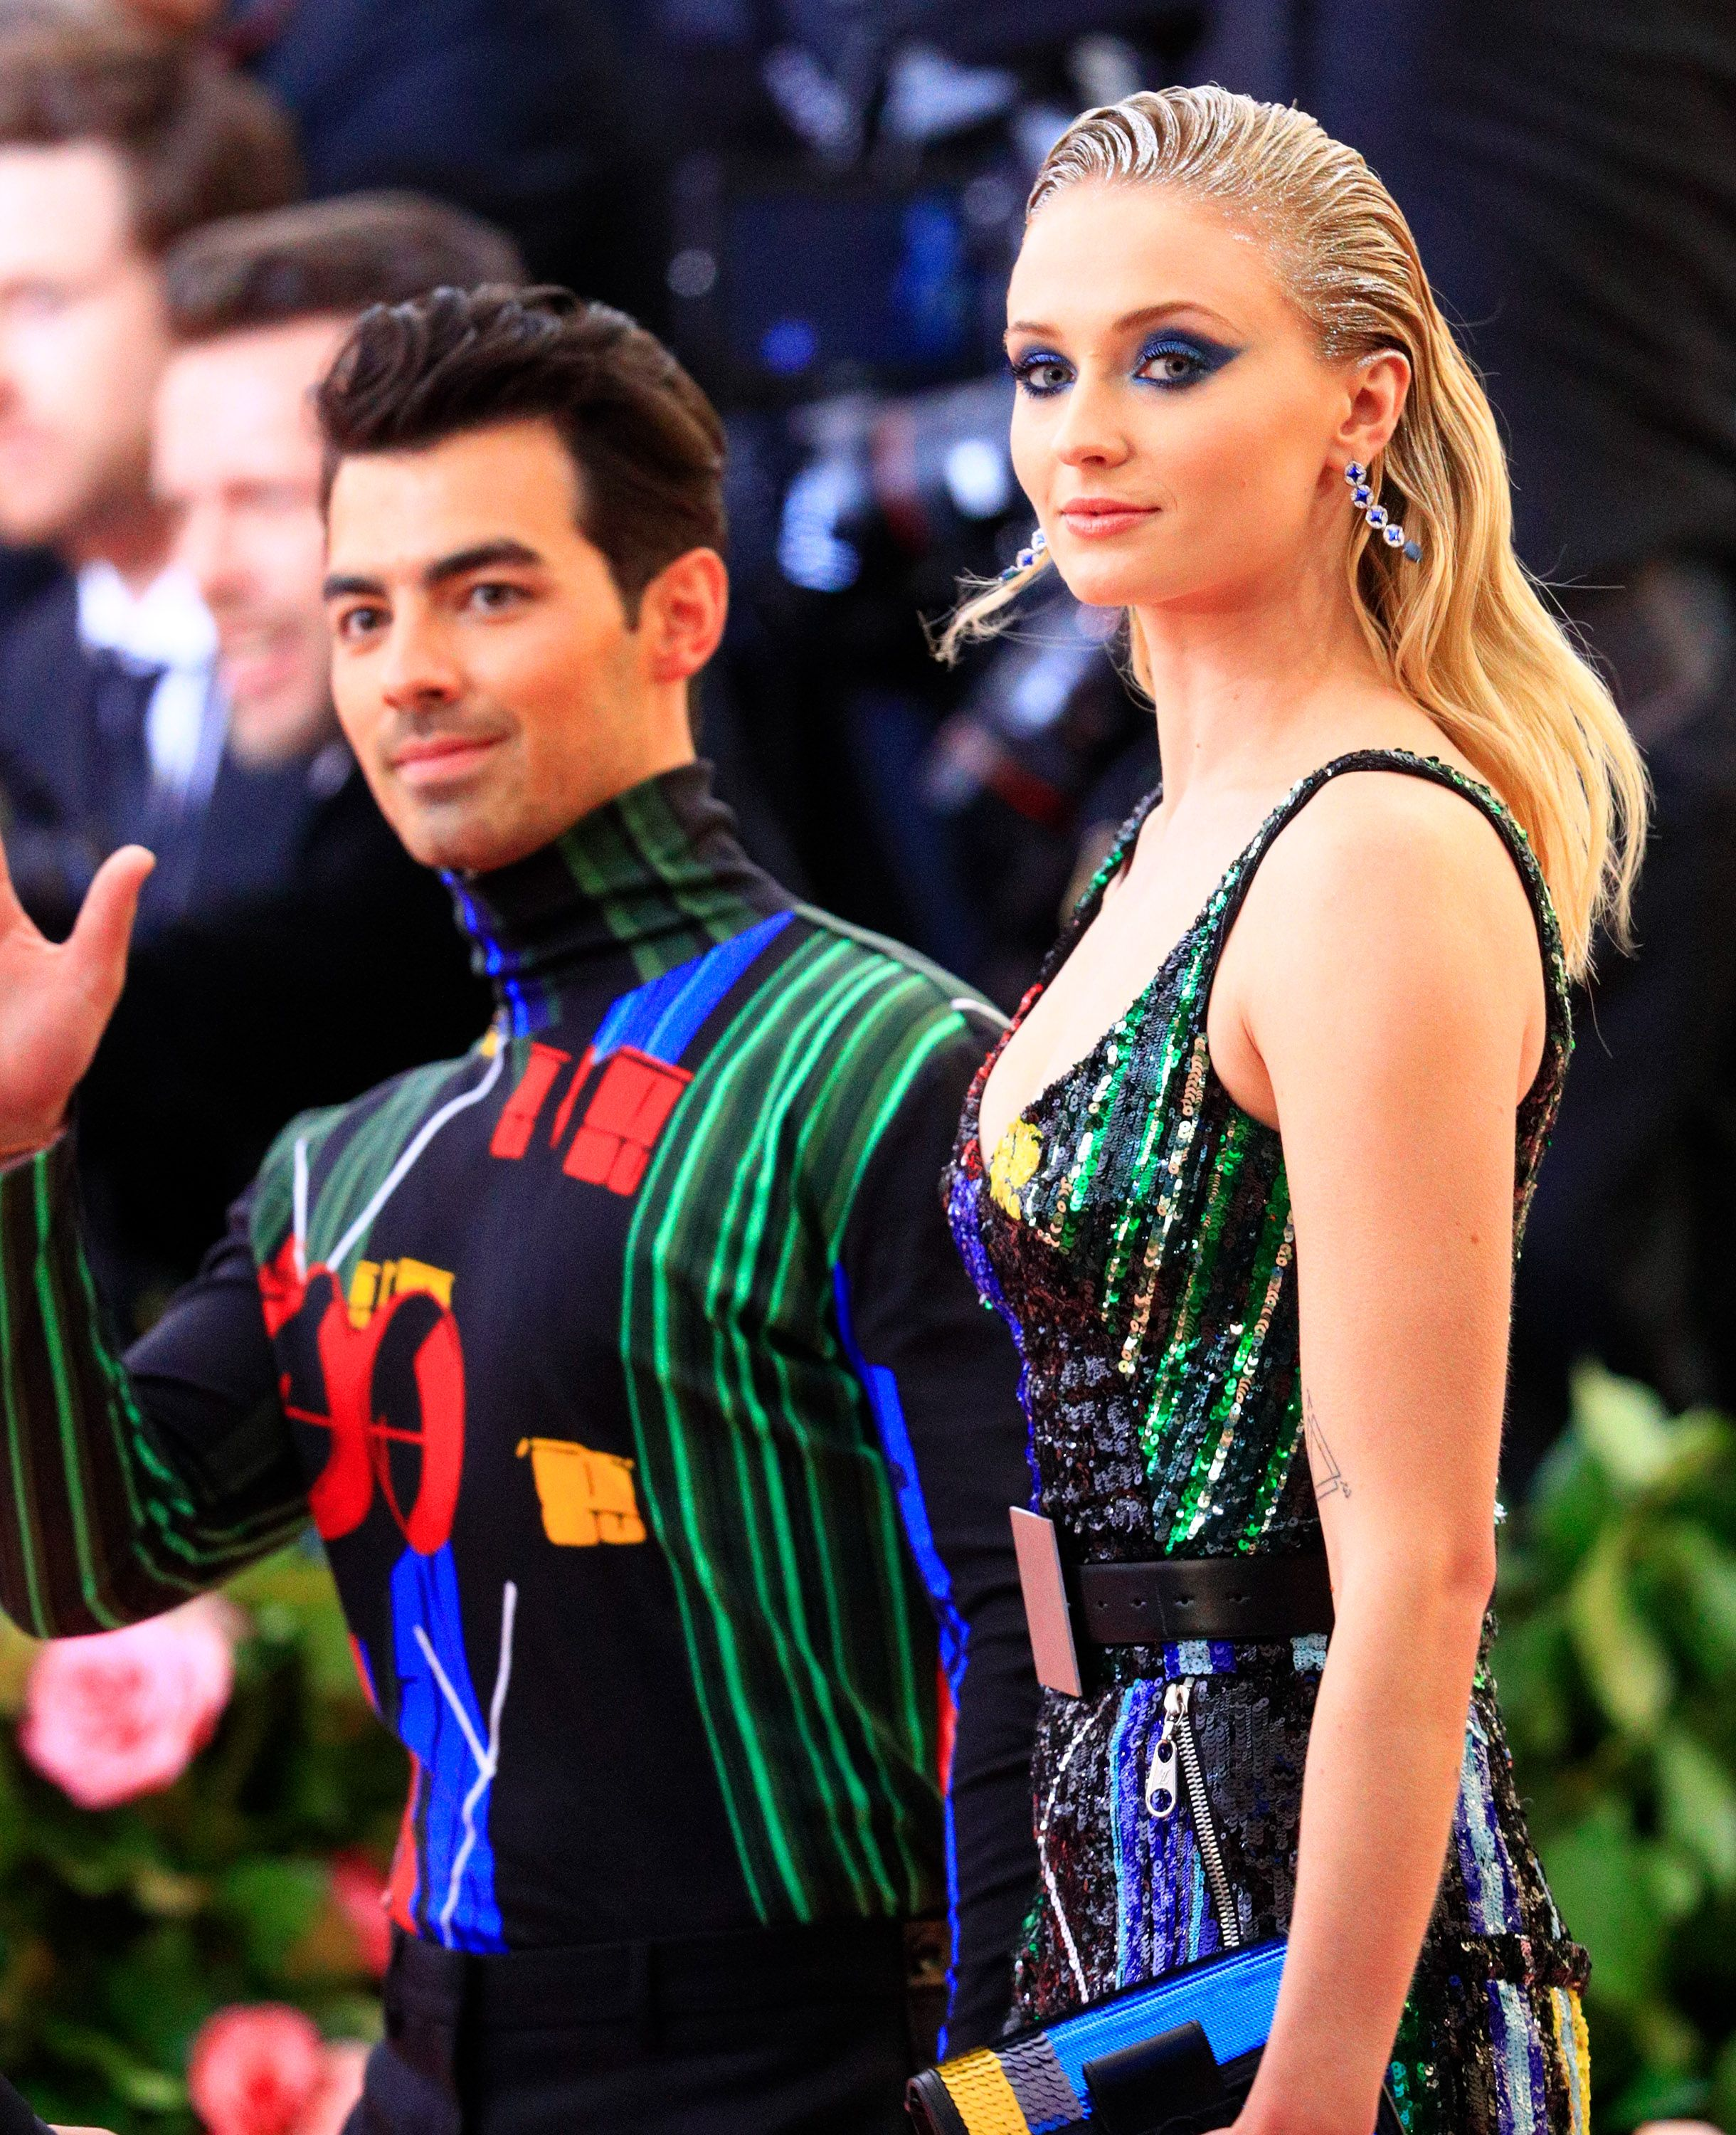 Joe Jonas Says Quarantining With Sophie Turner Is 'a Really Special Time'